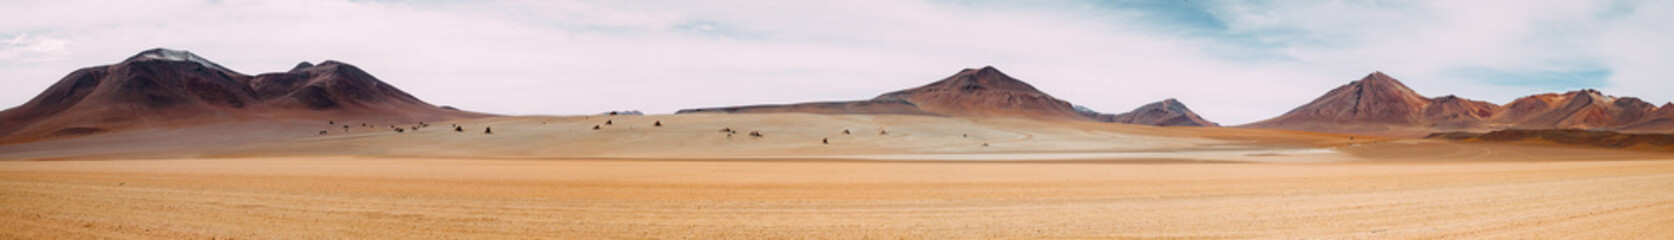 The vast expanse of nothingness - Atacama Desert - Bolivia